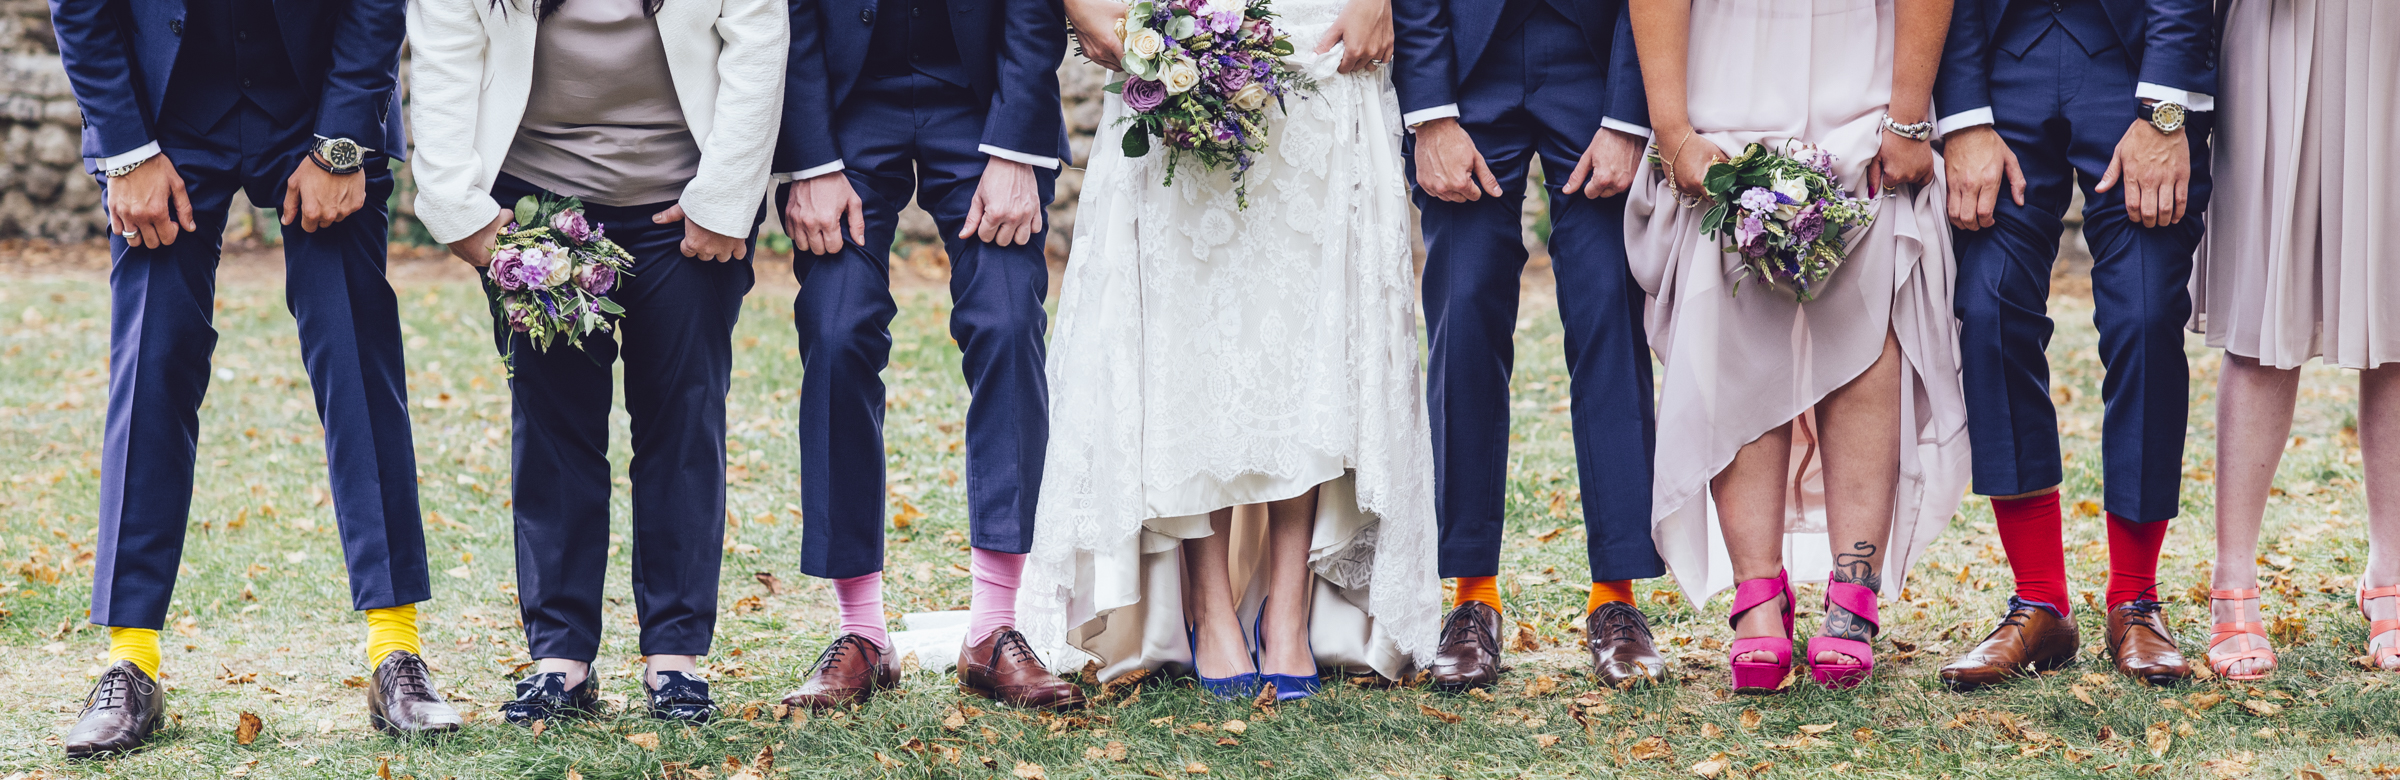 wedding photography based in Preston Lancashire travelling as far as Europe